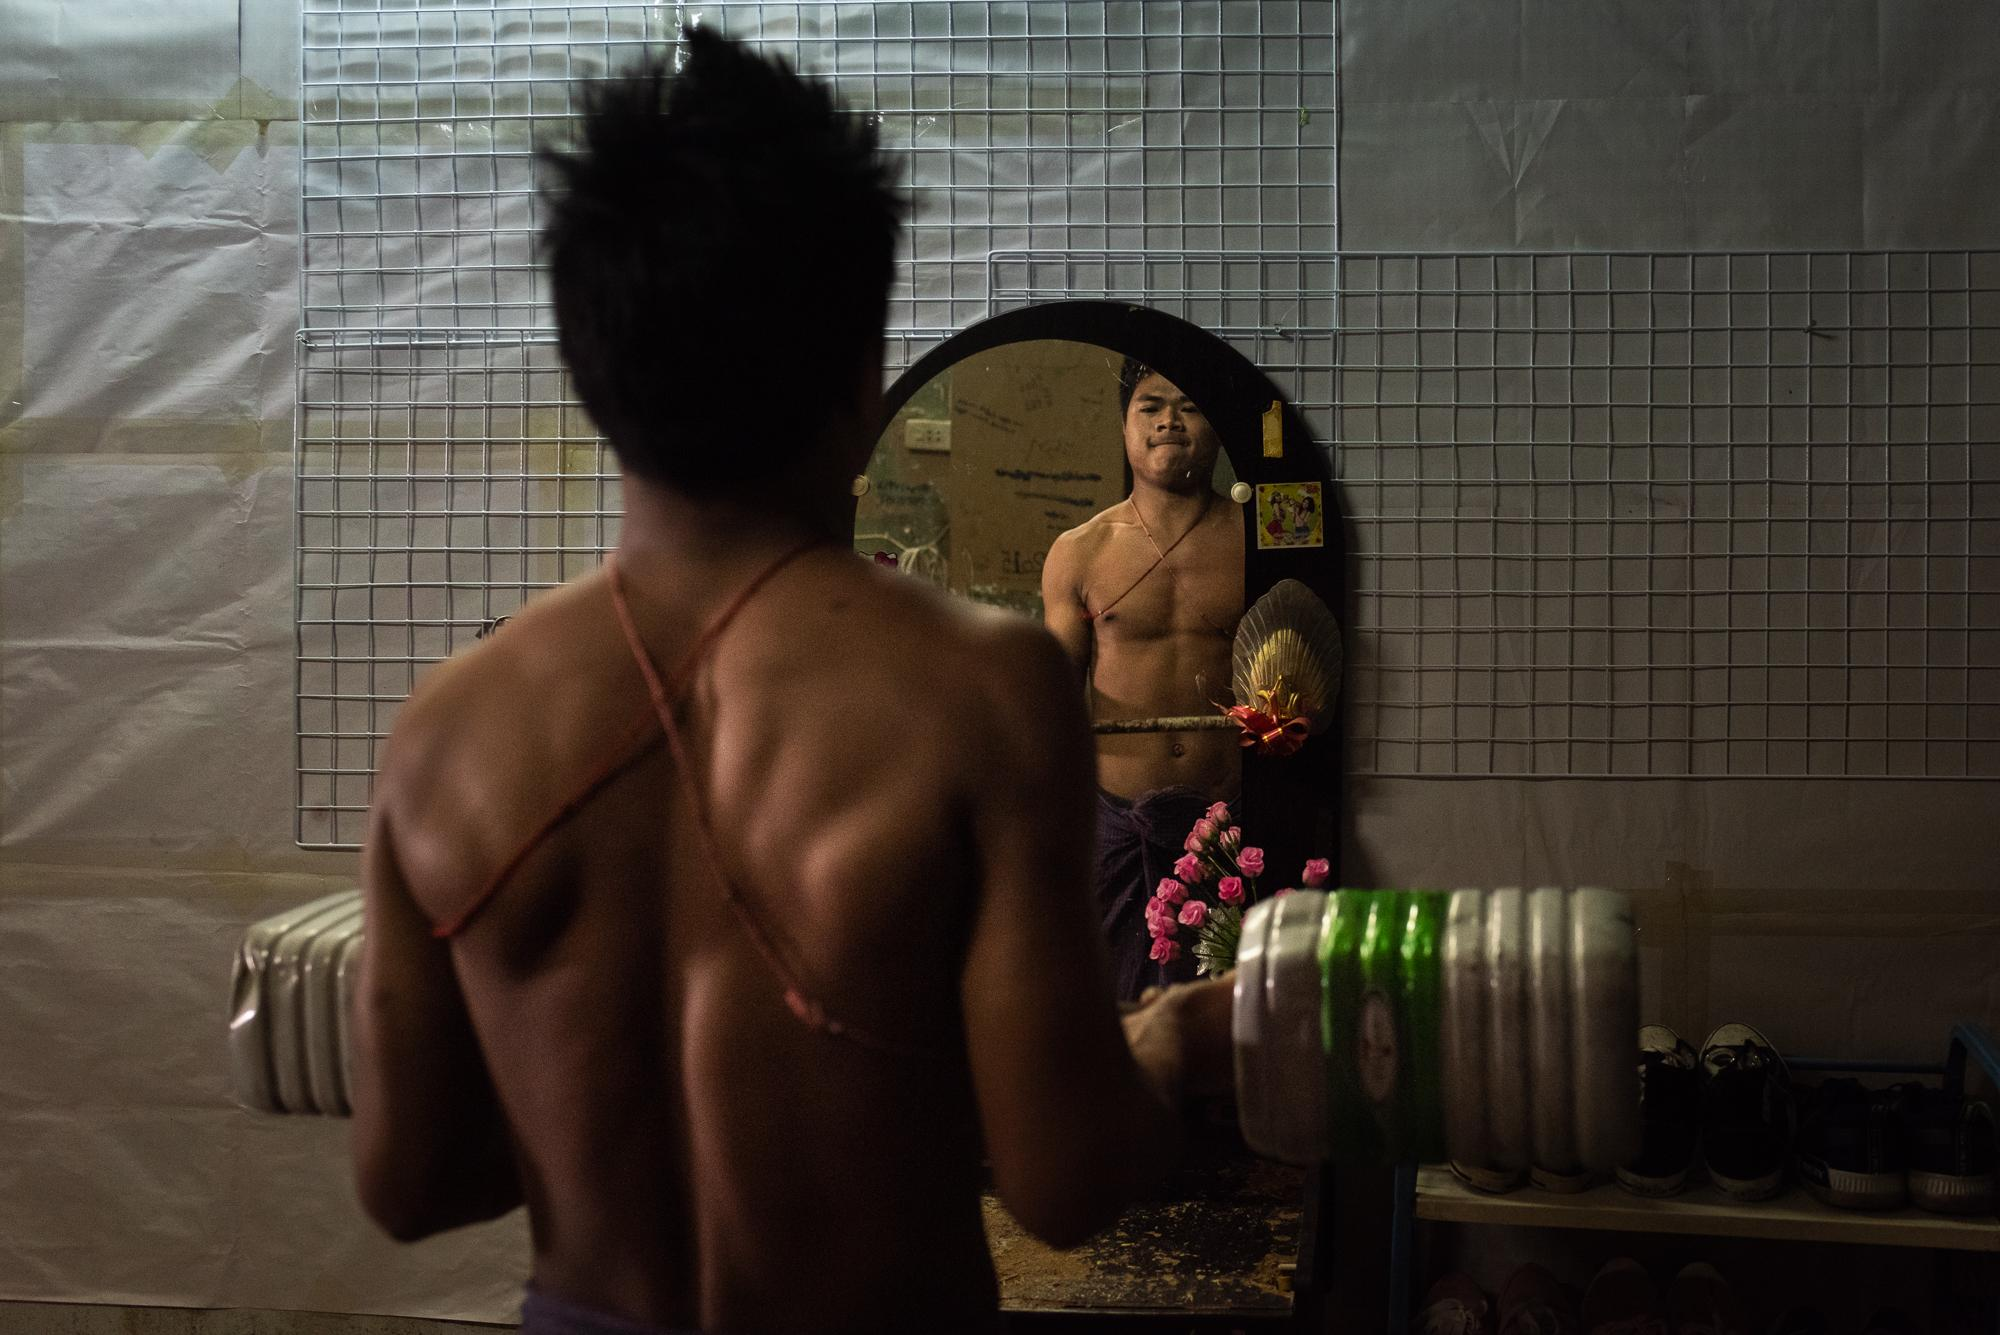 BANGKOK, THAILAND – DECEMBER 17, 2018: Aung Myat exercising with a barbell he made himself by filling plastic water bottles with sand. Keeping fit is important for Burmese workers, as most jobs that they get require physical labor.